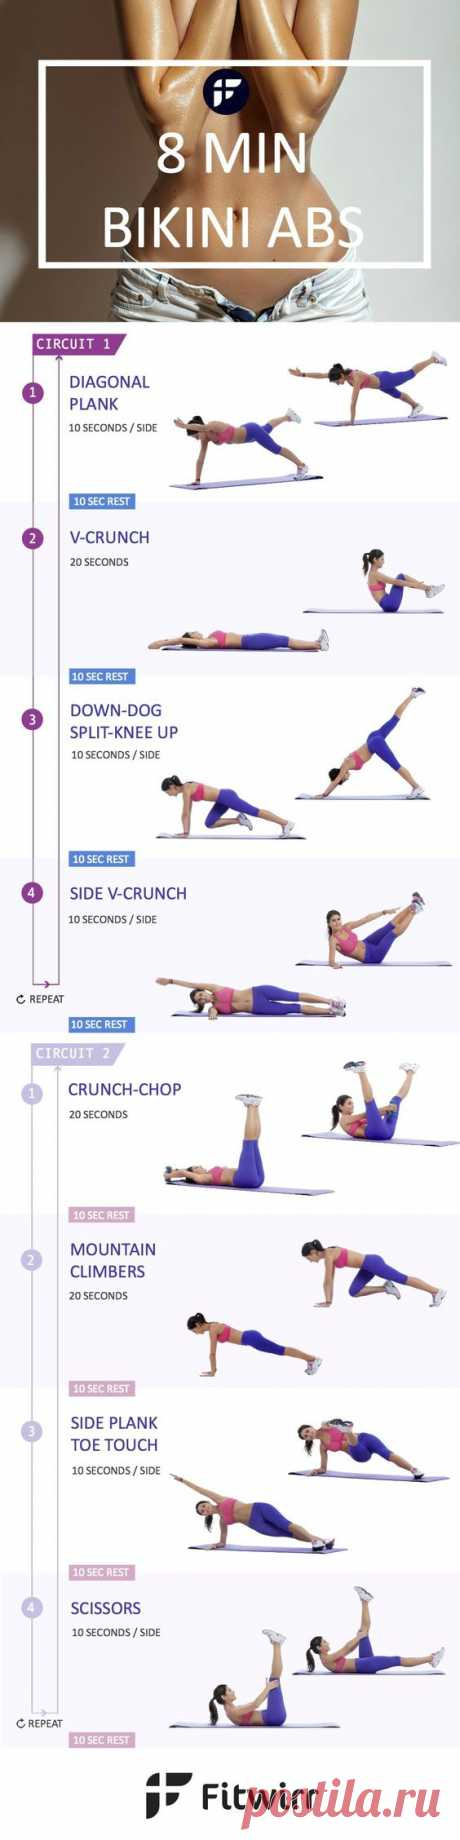 8 Minute Abs Workout to Get Six-Pack Abs [With Images]